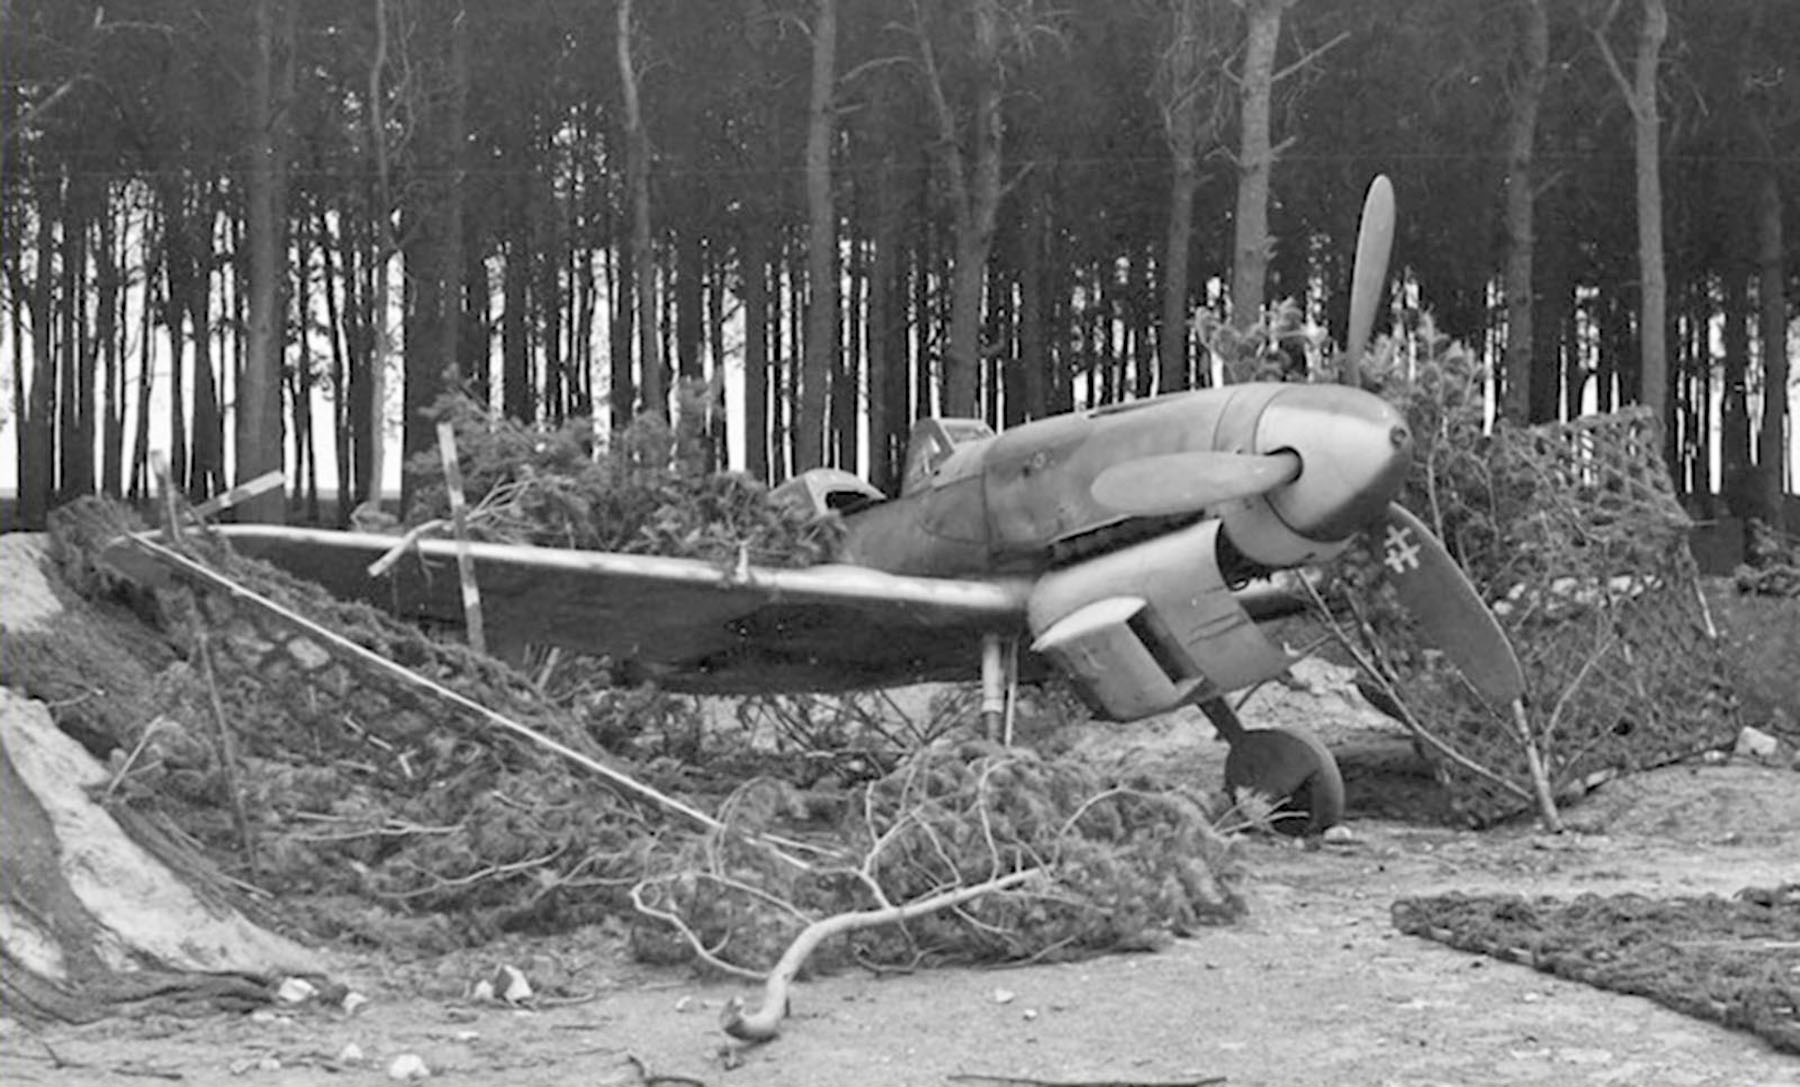 Messerschmitt Bf 109G10 Erla Reichsverteidigung unknown unit and pilot Stendal 1945 02